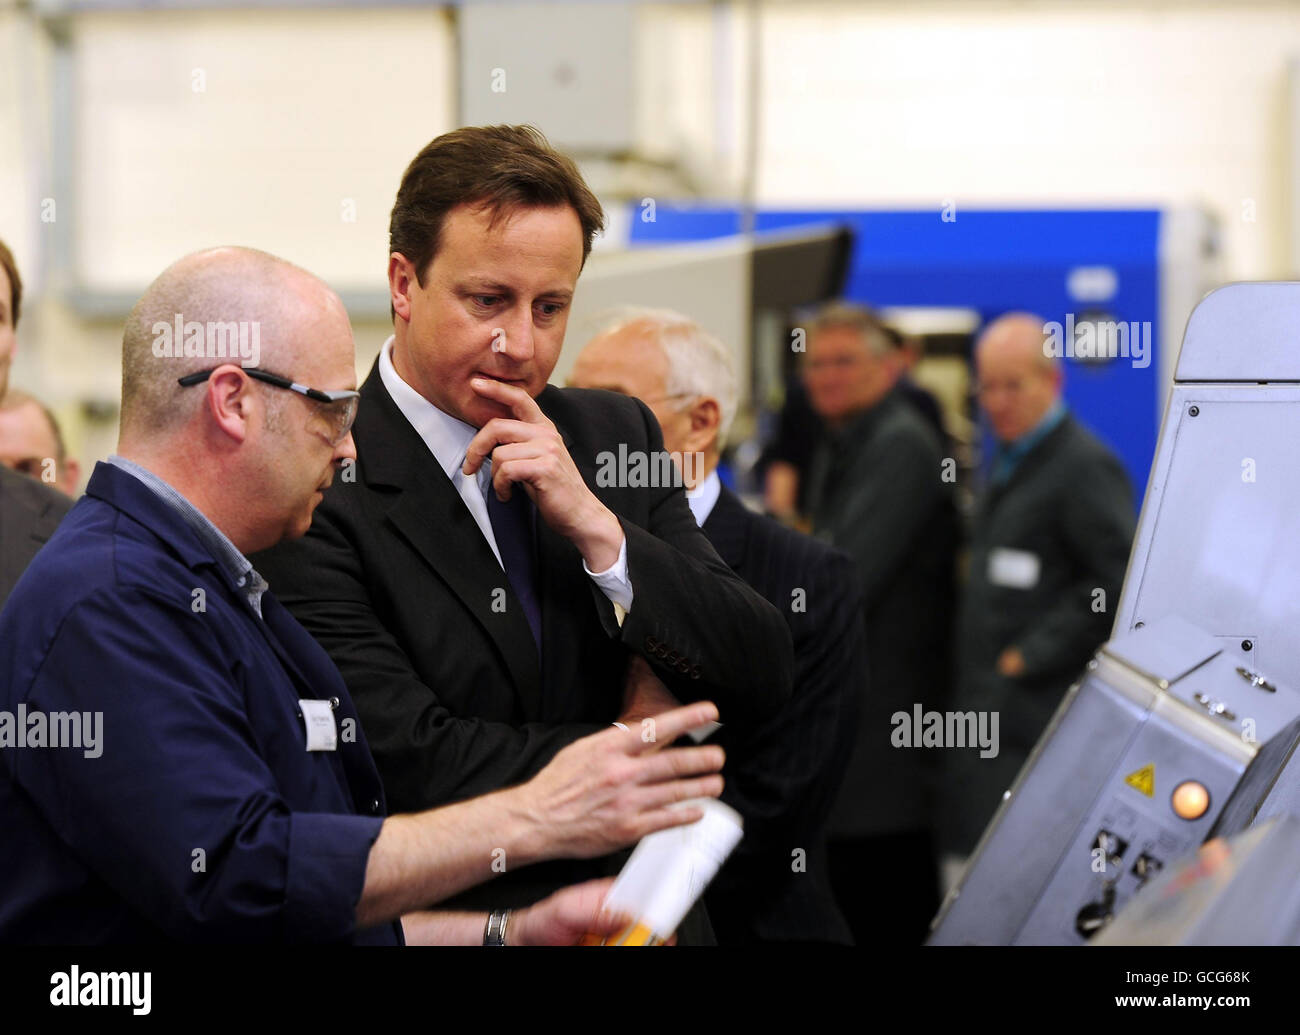 Prime Minister David Cameron visits the shop floor as work goes on at the Surgical Innovations building in Leeds, the make hi-tech medical equipment makers. Stock Photo